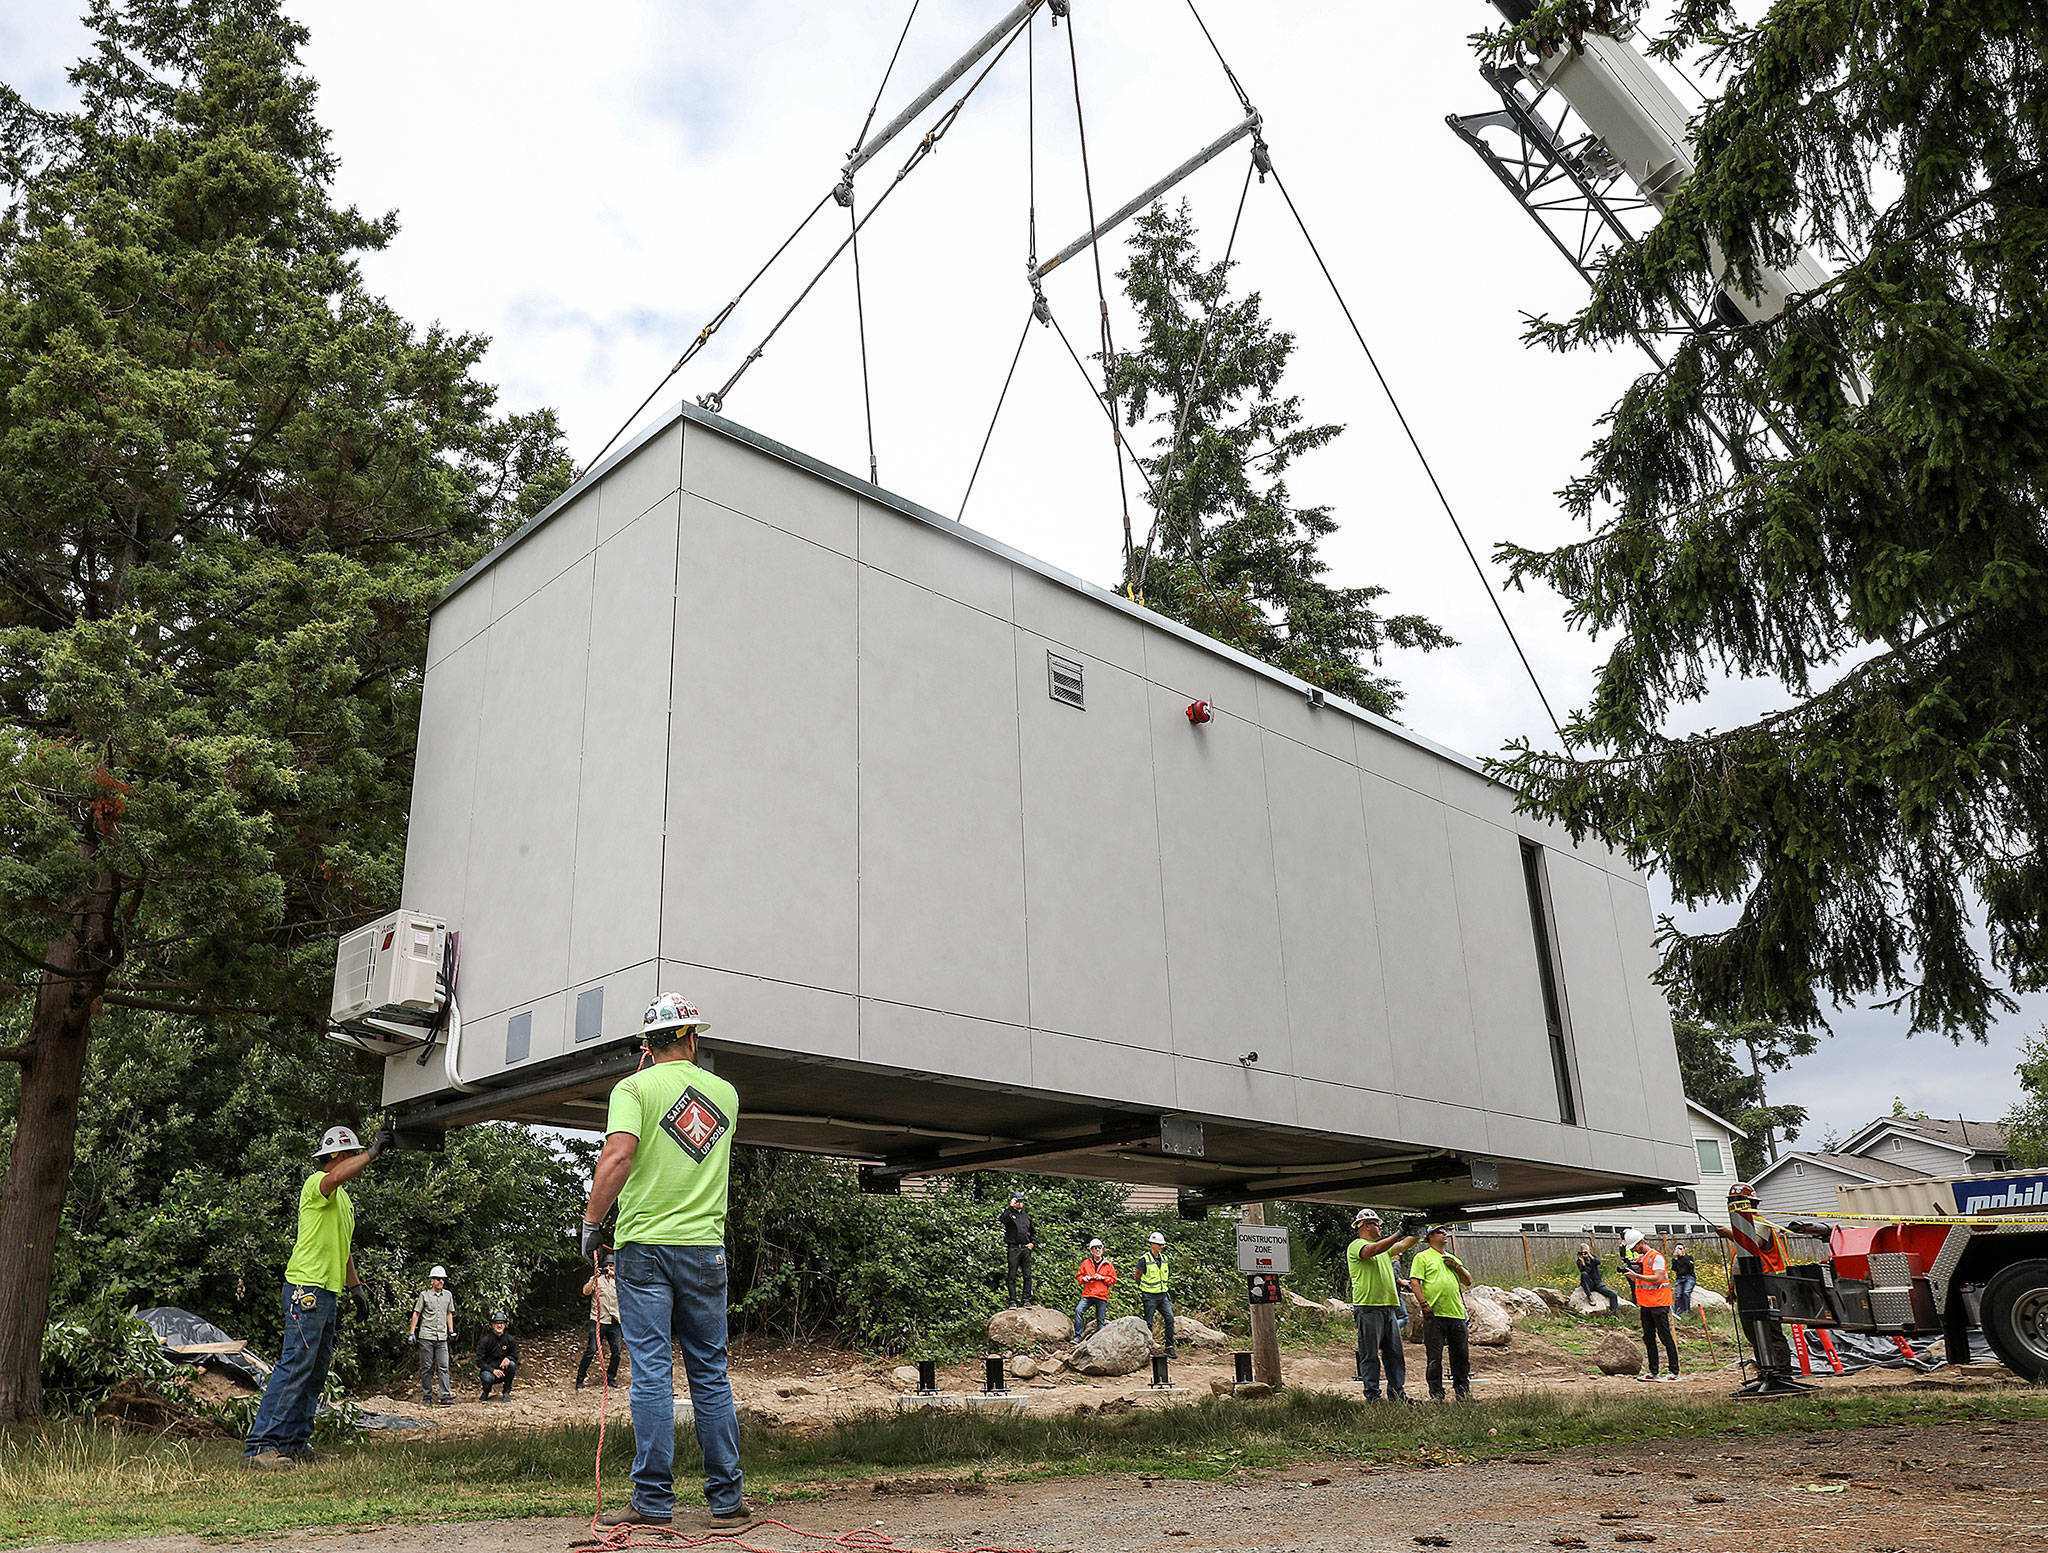 The first Blok unit by the start-up Blokable is placed on the grounds of the Edmonds Lutheran Church on June 29. The church is partnering with Compass Housing Alliance to build low-income housing on its property. (Lizz Giordano / The Herald)